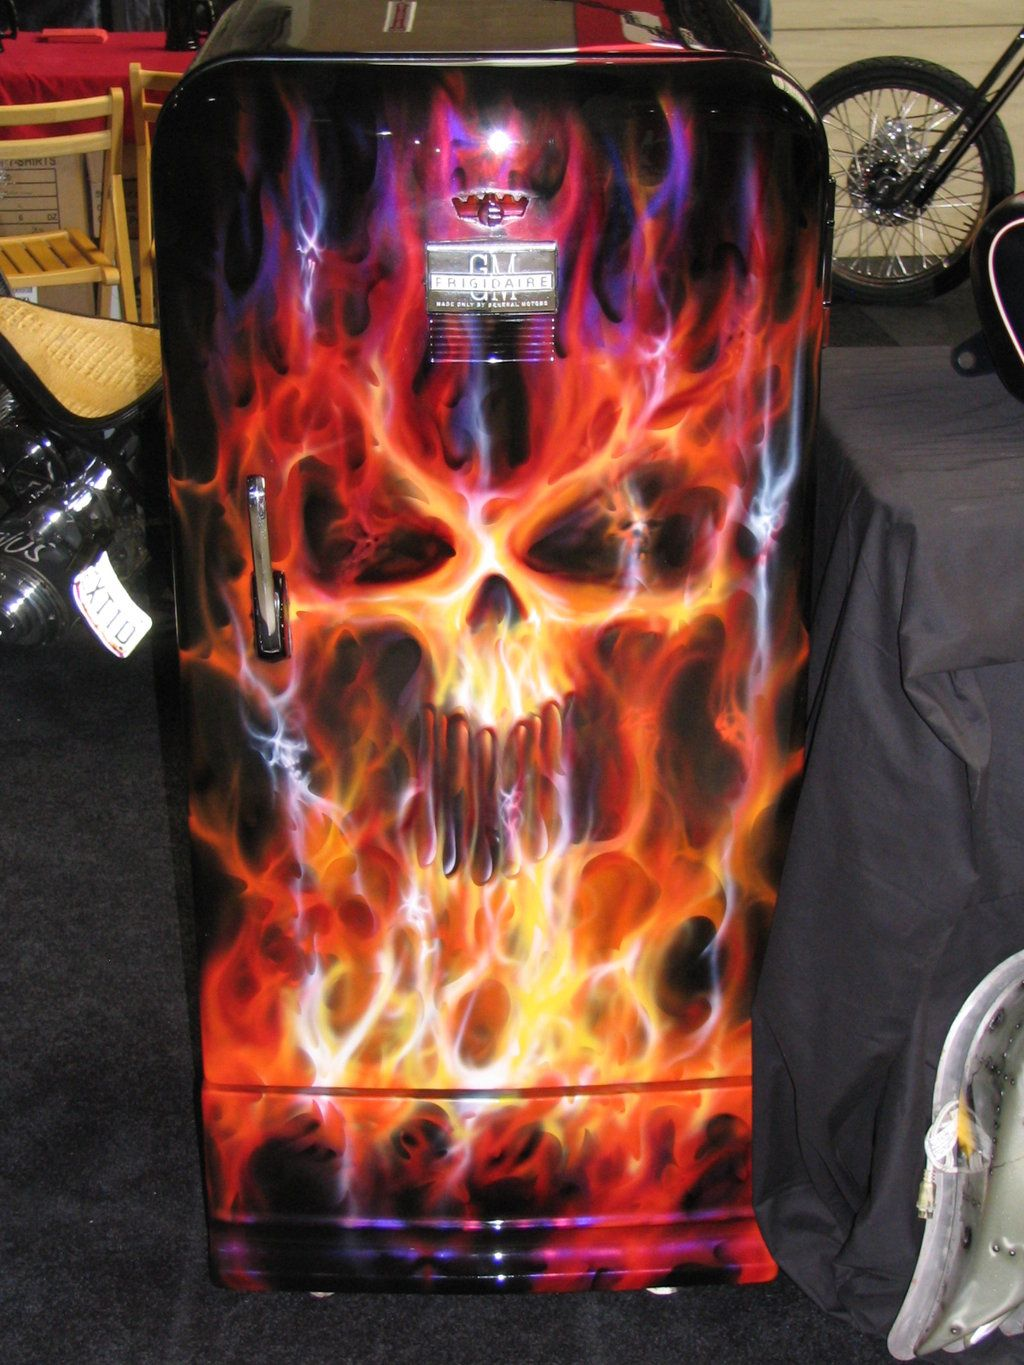 Pin By Kristiano Power On Refri Pinterest Airbrush Art